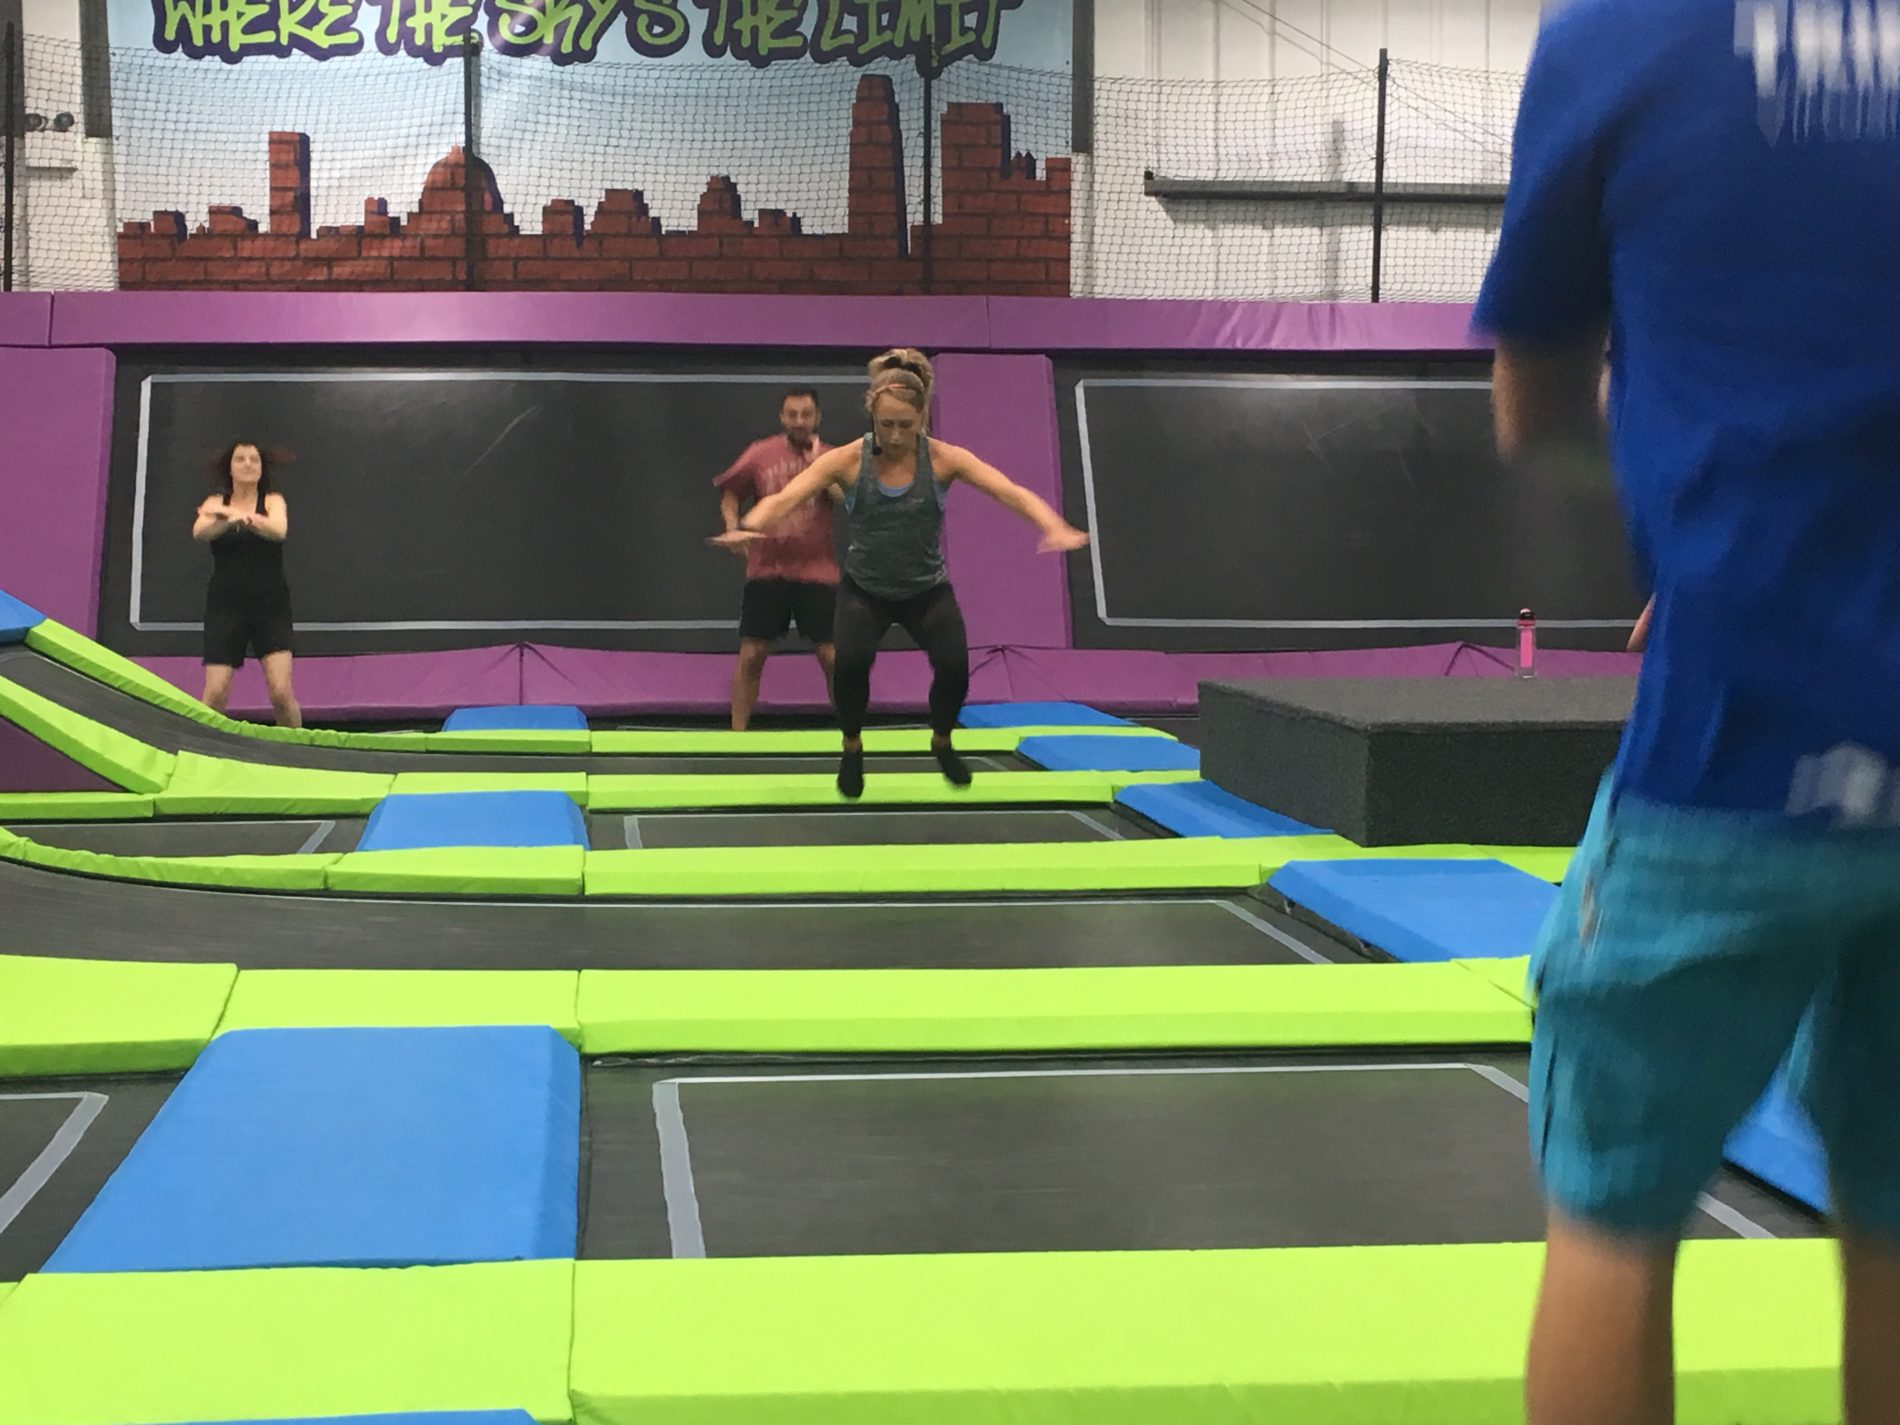 Getting some air at bounce strong